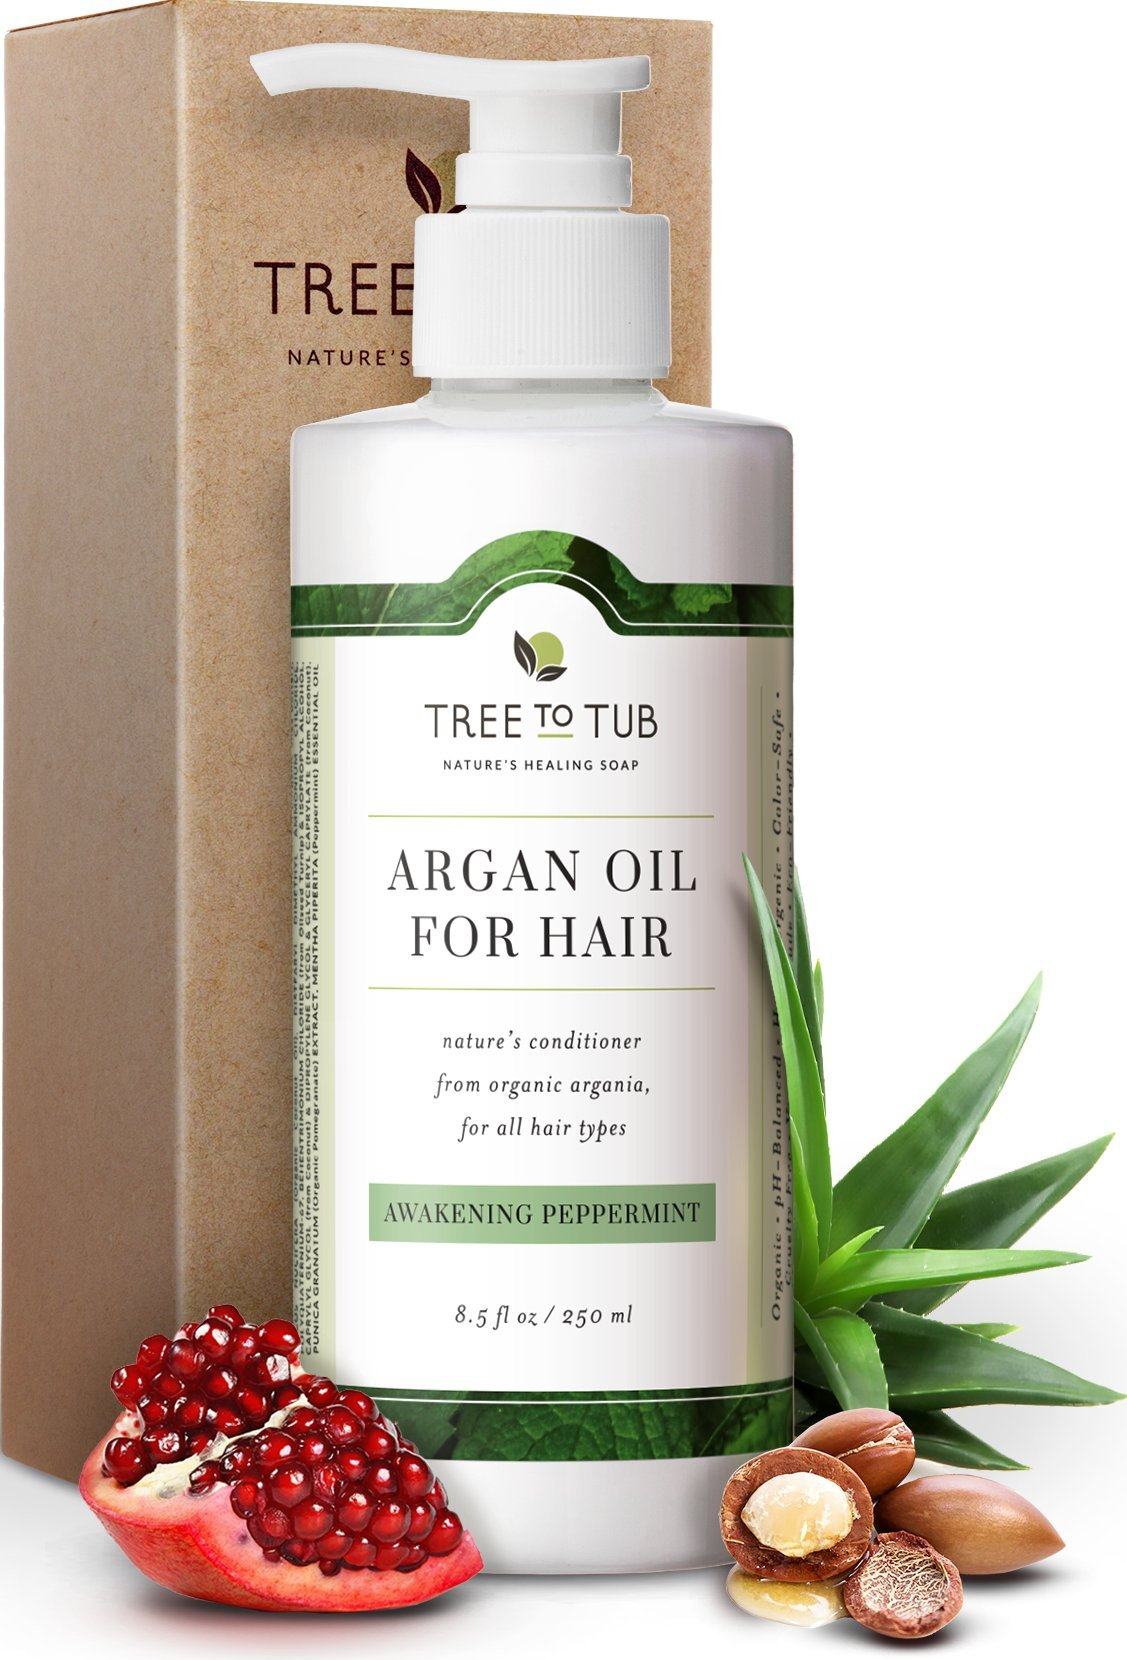 Real, Organic Conditioner For Oily Hair, The Only pH 5.5 Balanced Peppermint Natural Conditioner For Sensitive Skin – Deep Conditioner For Natural Hair With Eco-Friendly Wild Soapberries